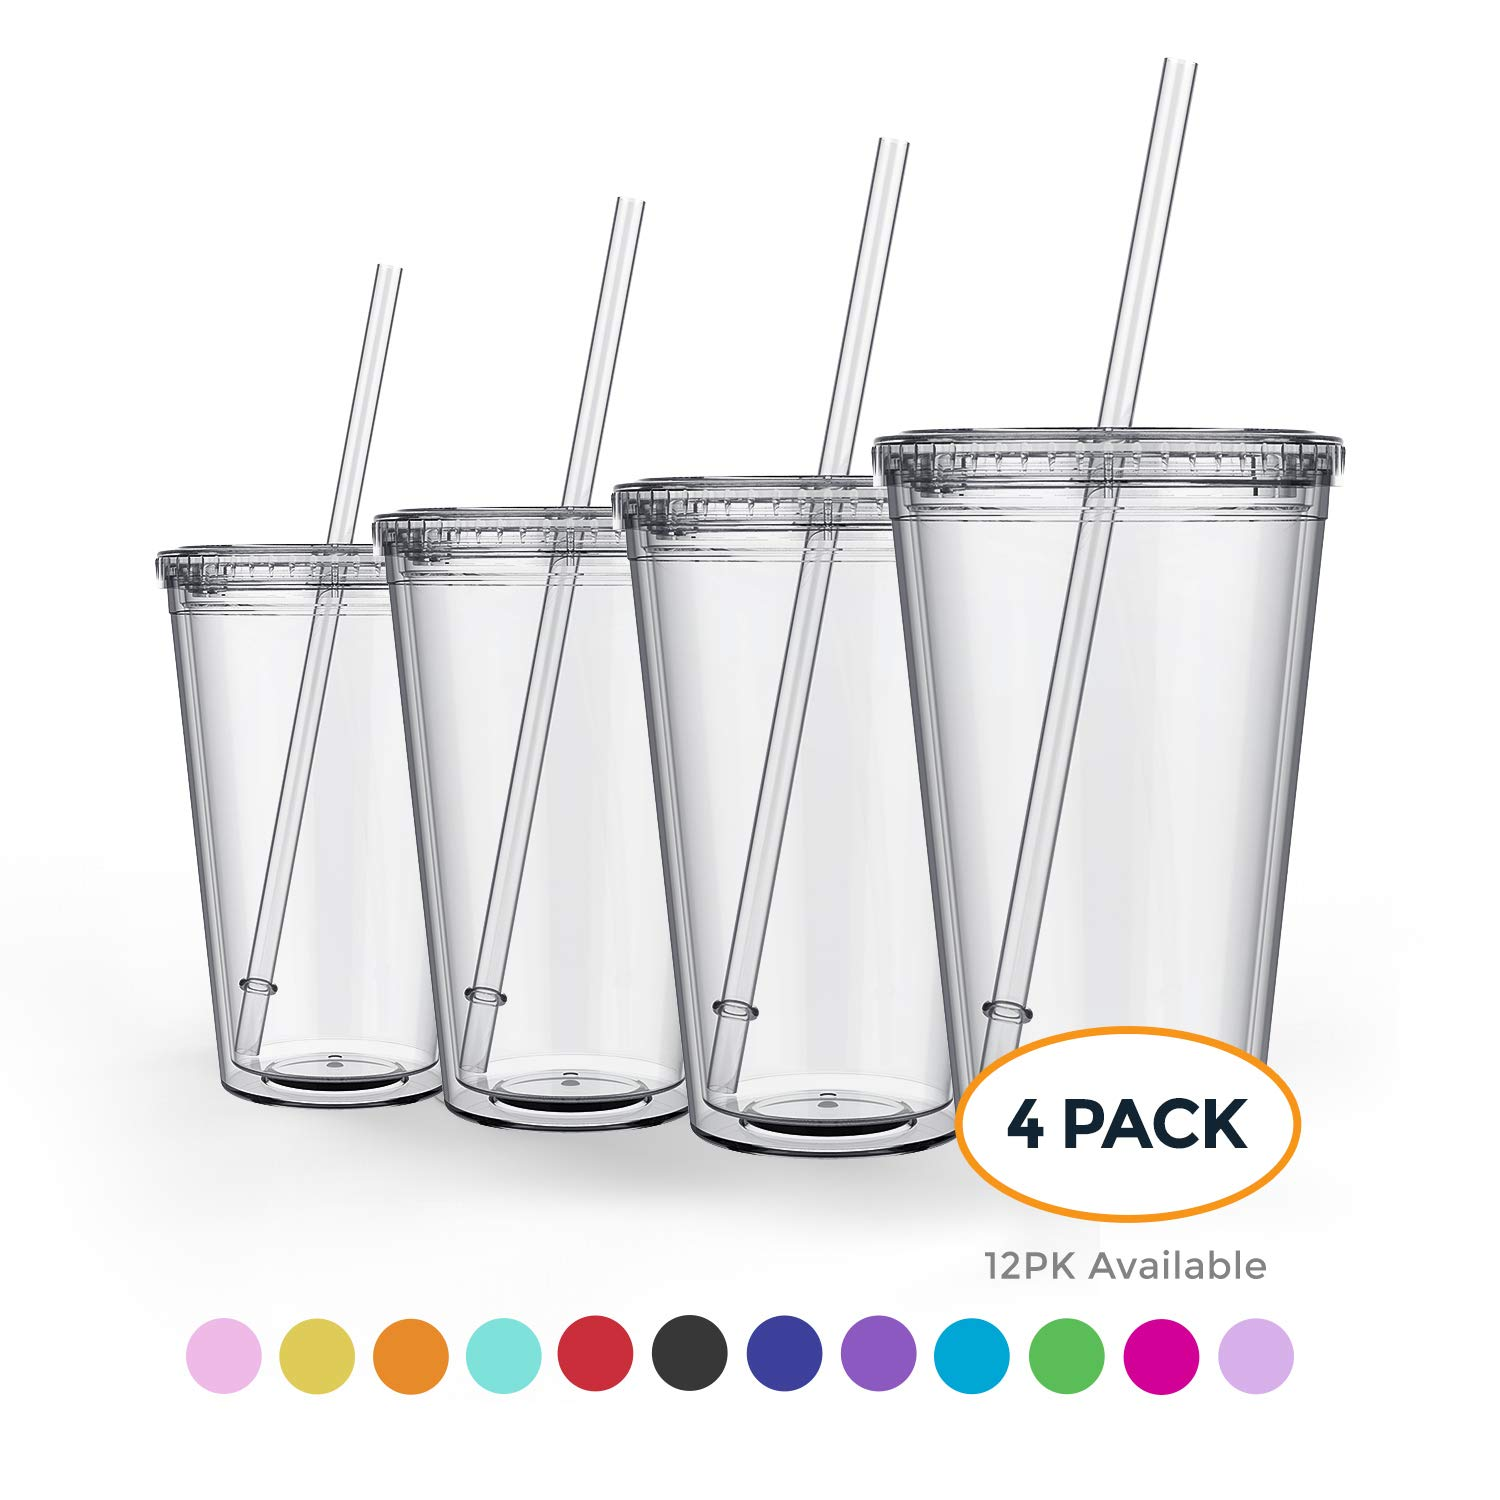 Maars Classic Insulated Tumblers 16 oz. | Double Wall Acrylic | 4 pack by Maars® Drinkware